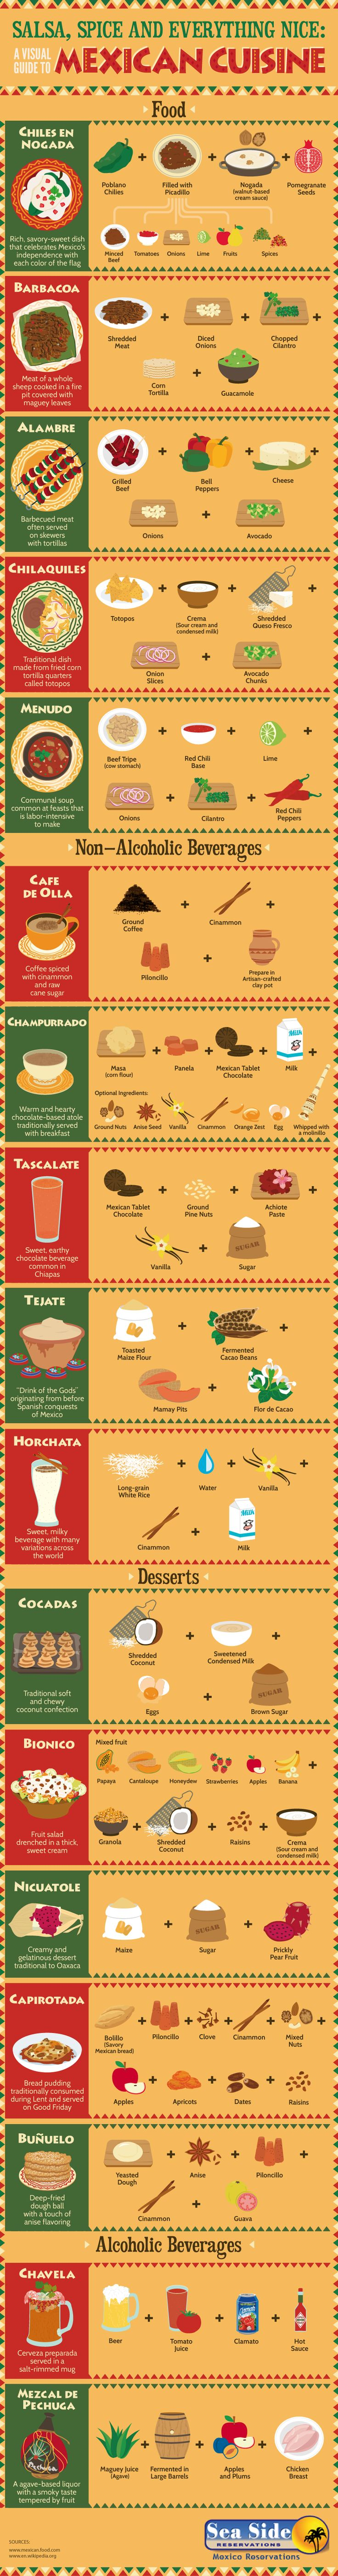 Salsa, Spice And Everything Nice: A Visual Guide to MexicanCuisine